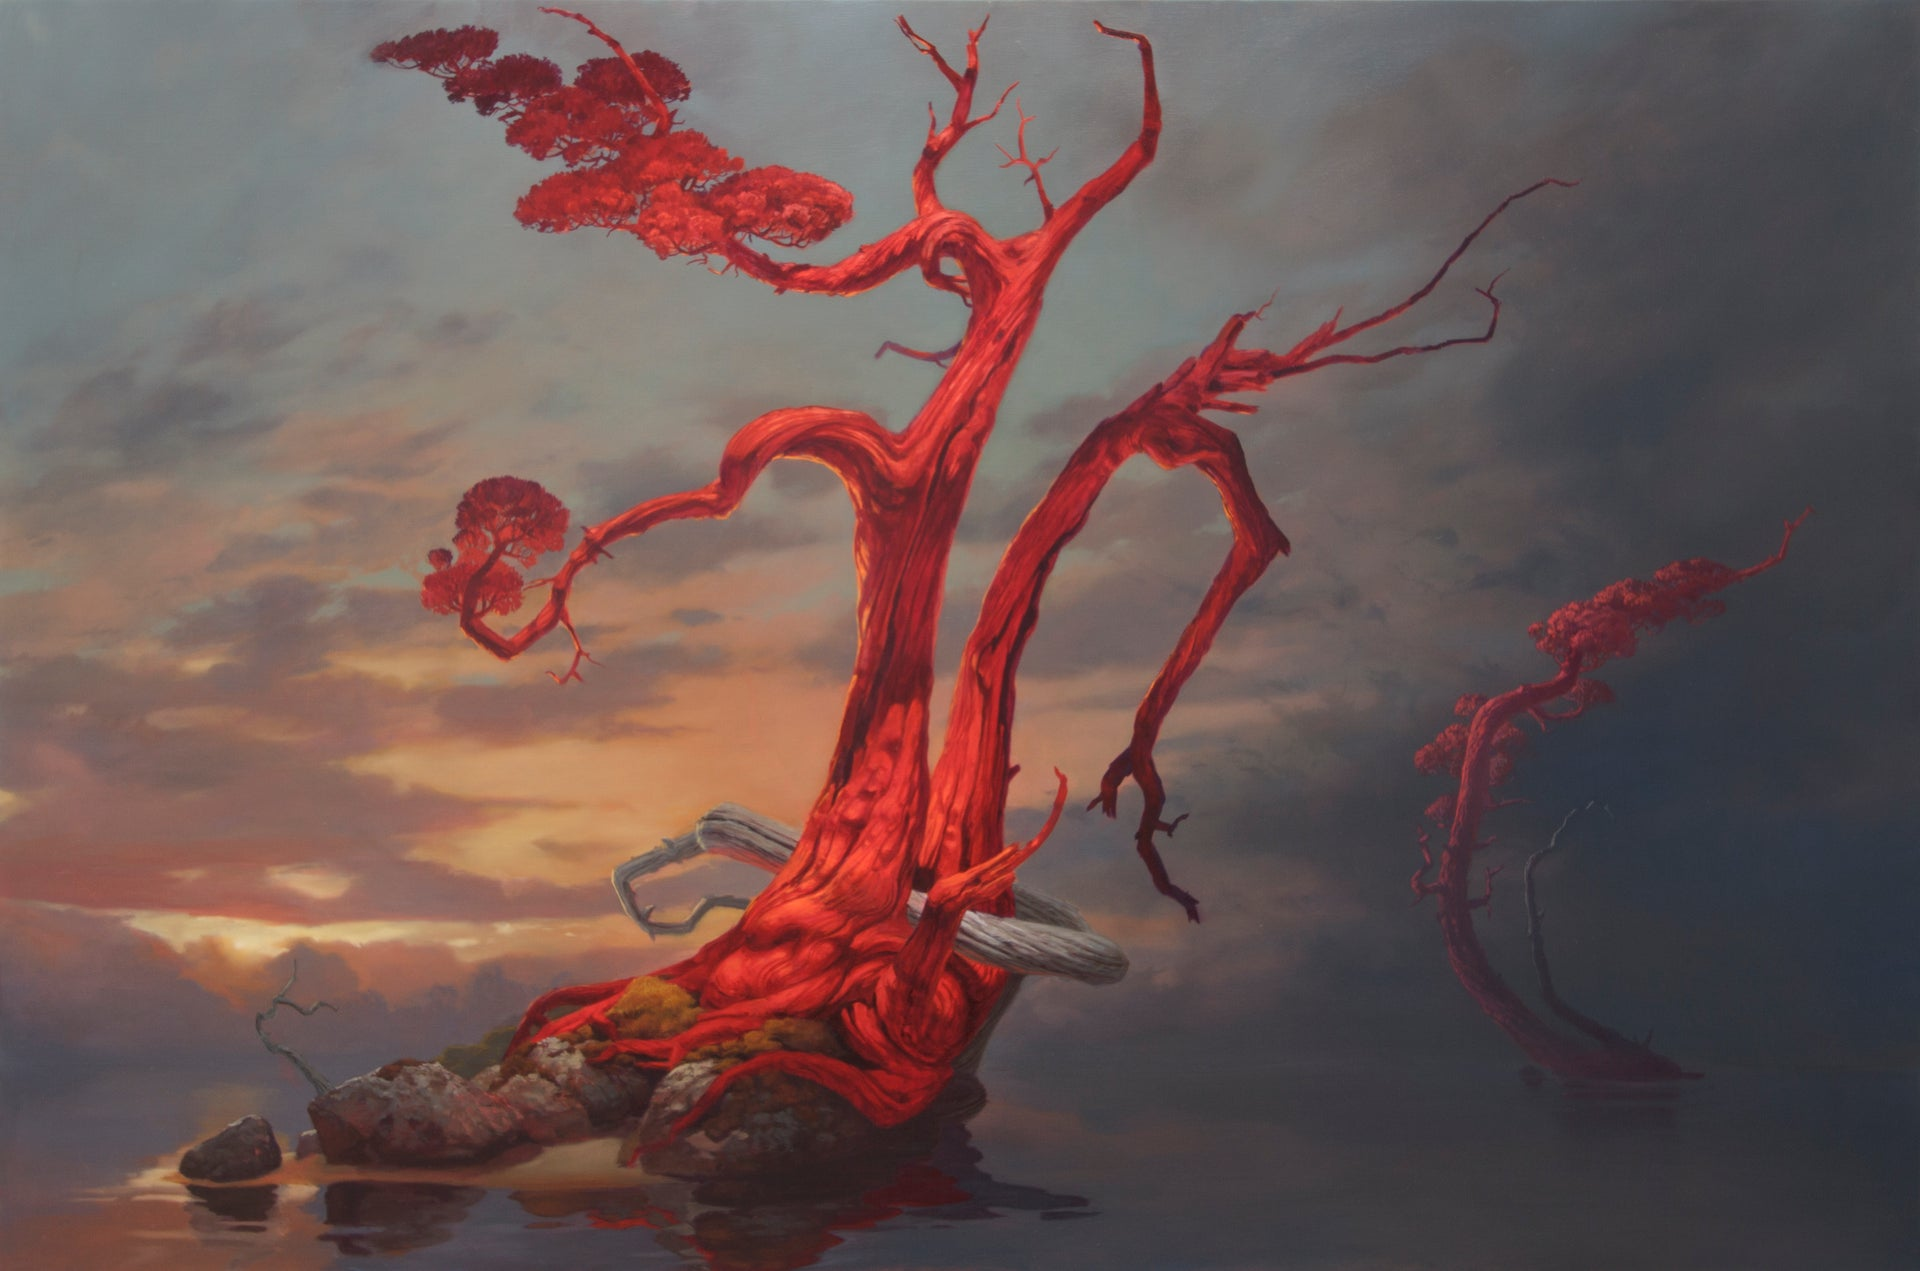 The Red Tree is alone